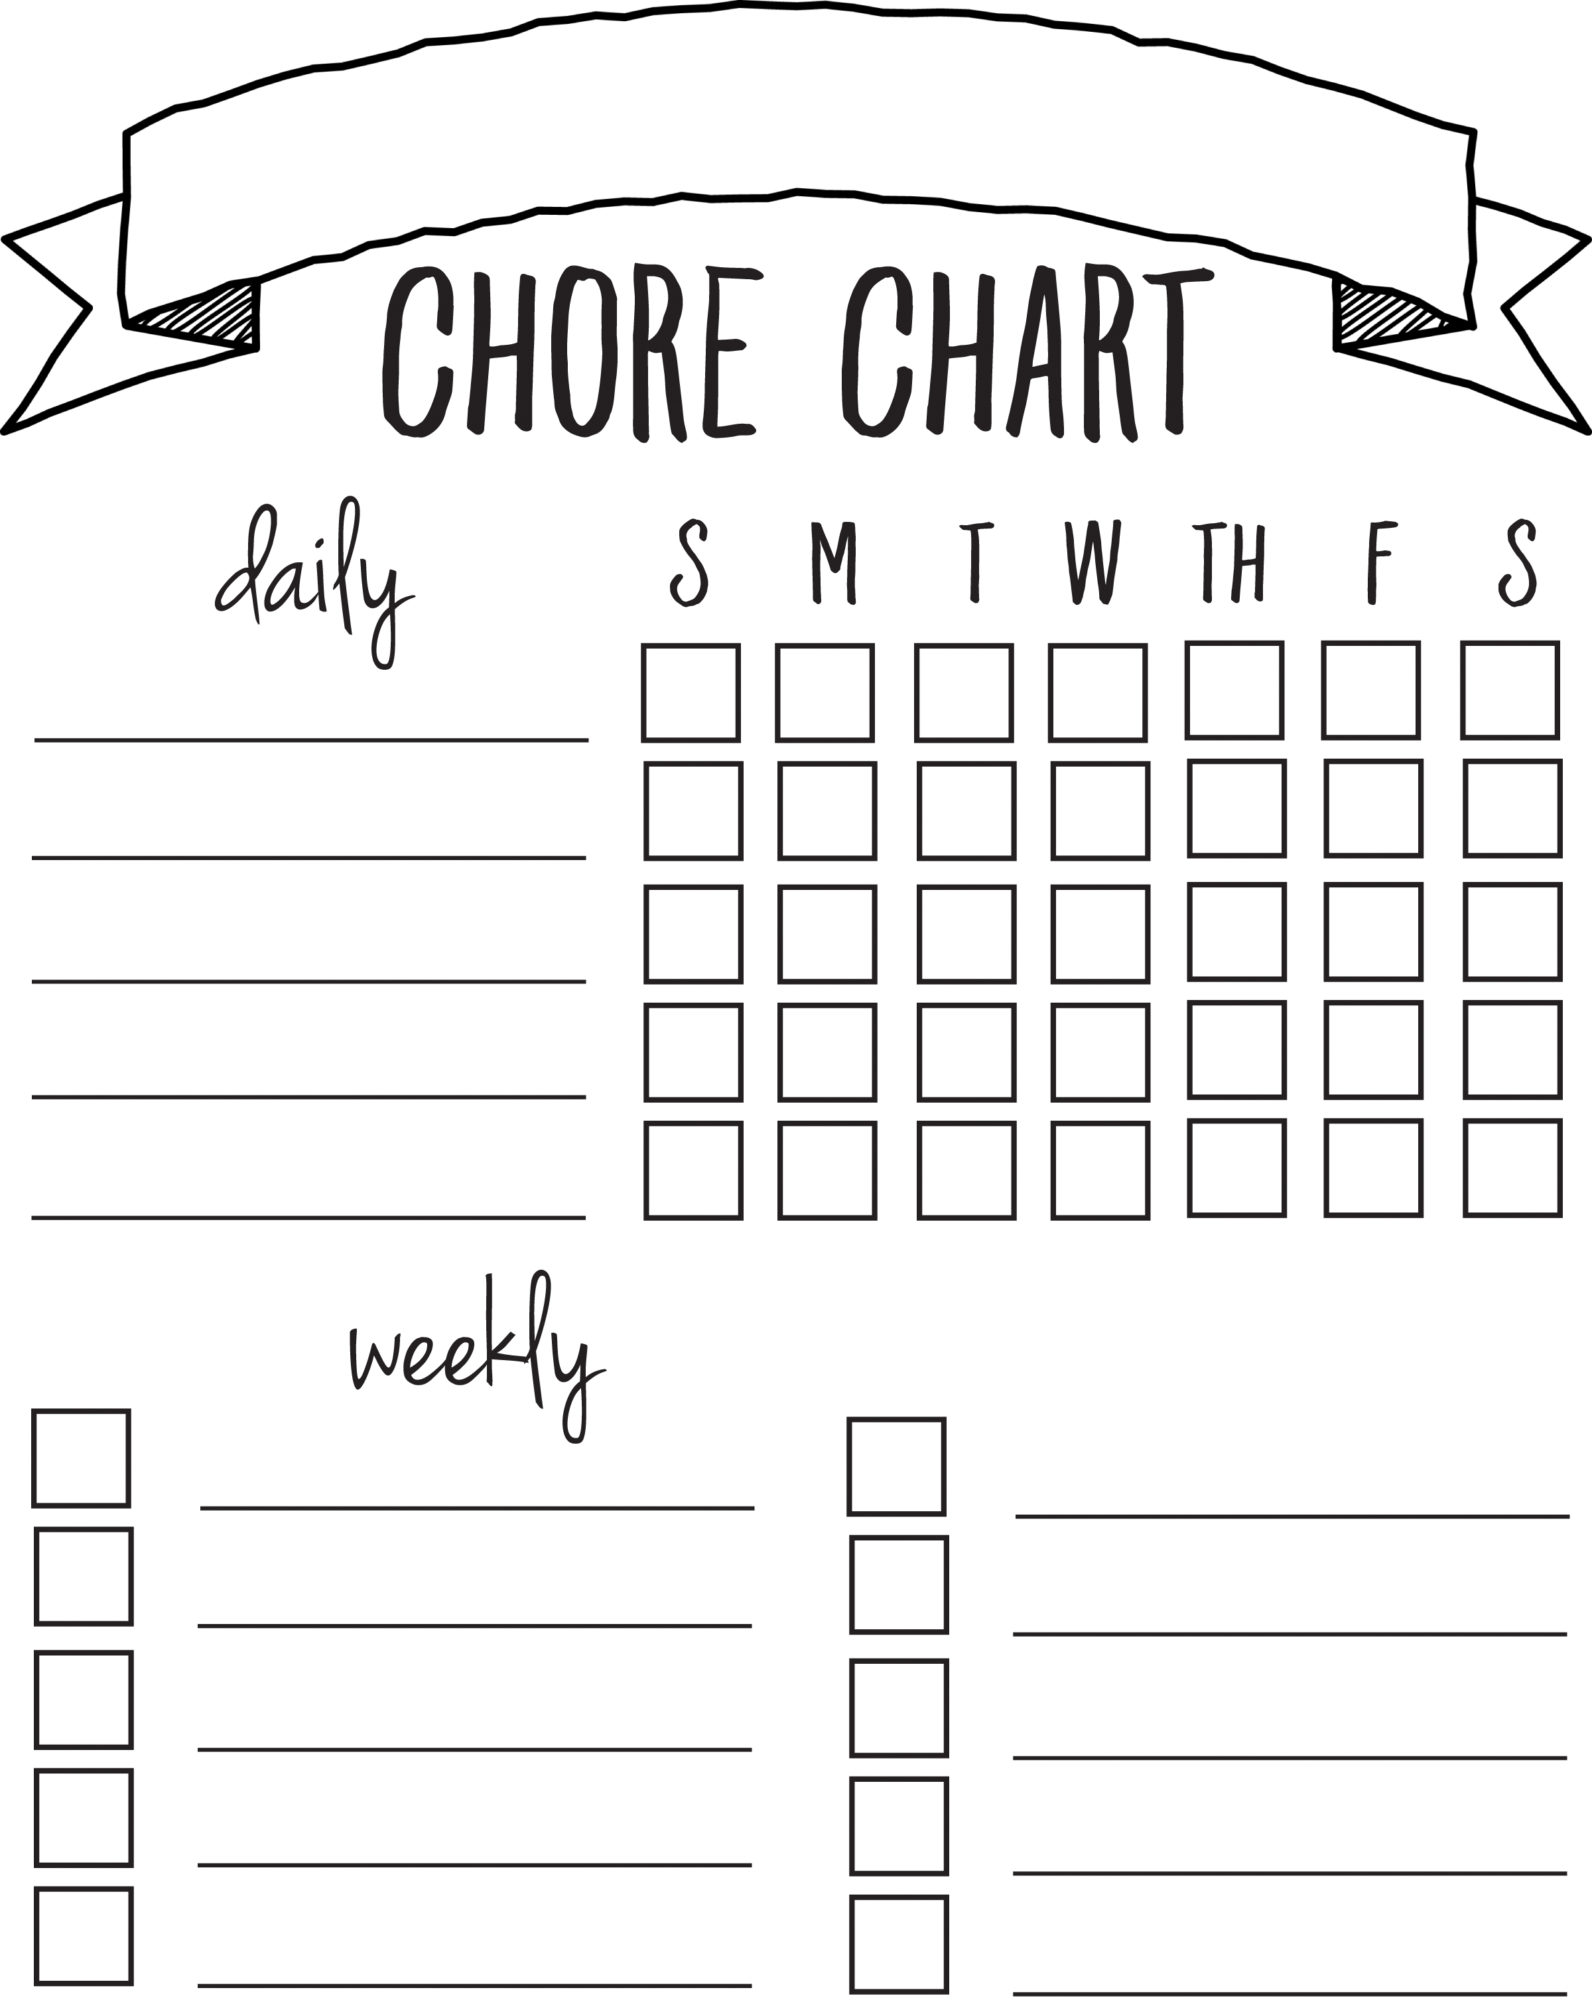 Impeccable image inside chores chart printable